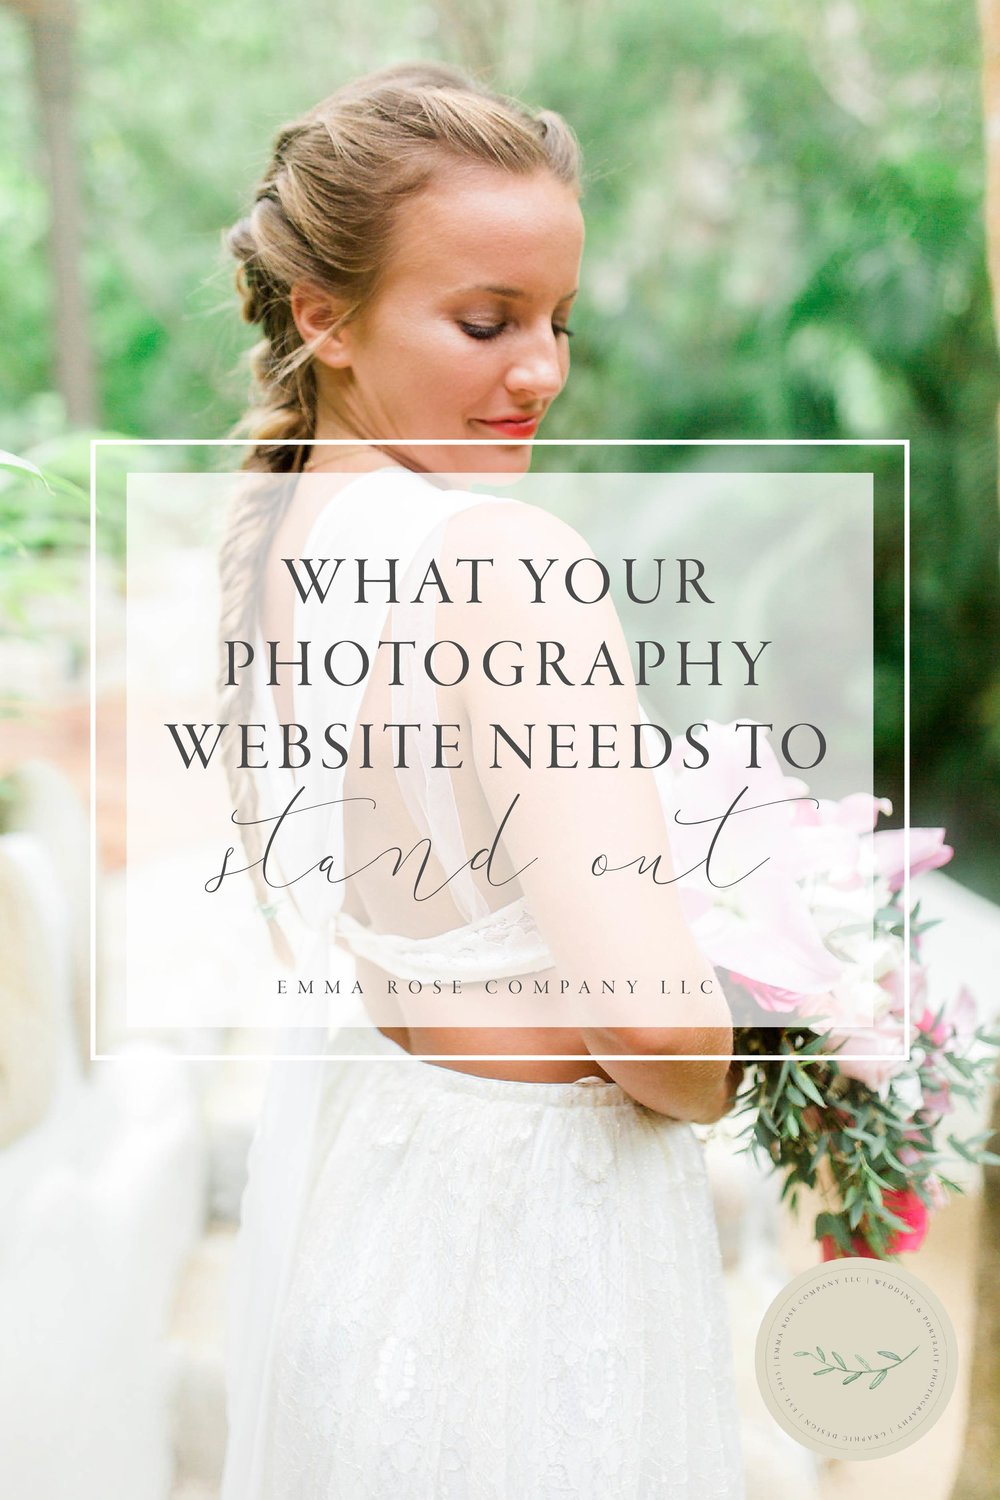 What your photography website needs to stand out | Photography business tips and strategies | How to grow your photography business | Emma Rose Company